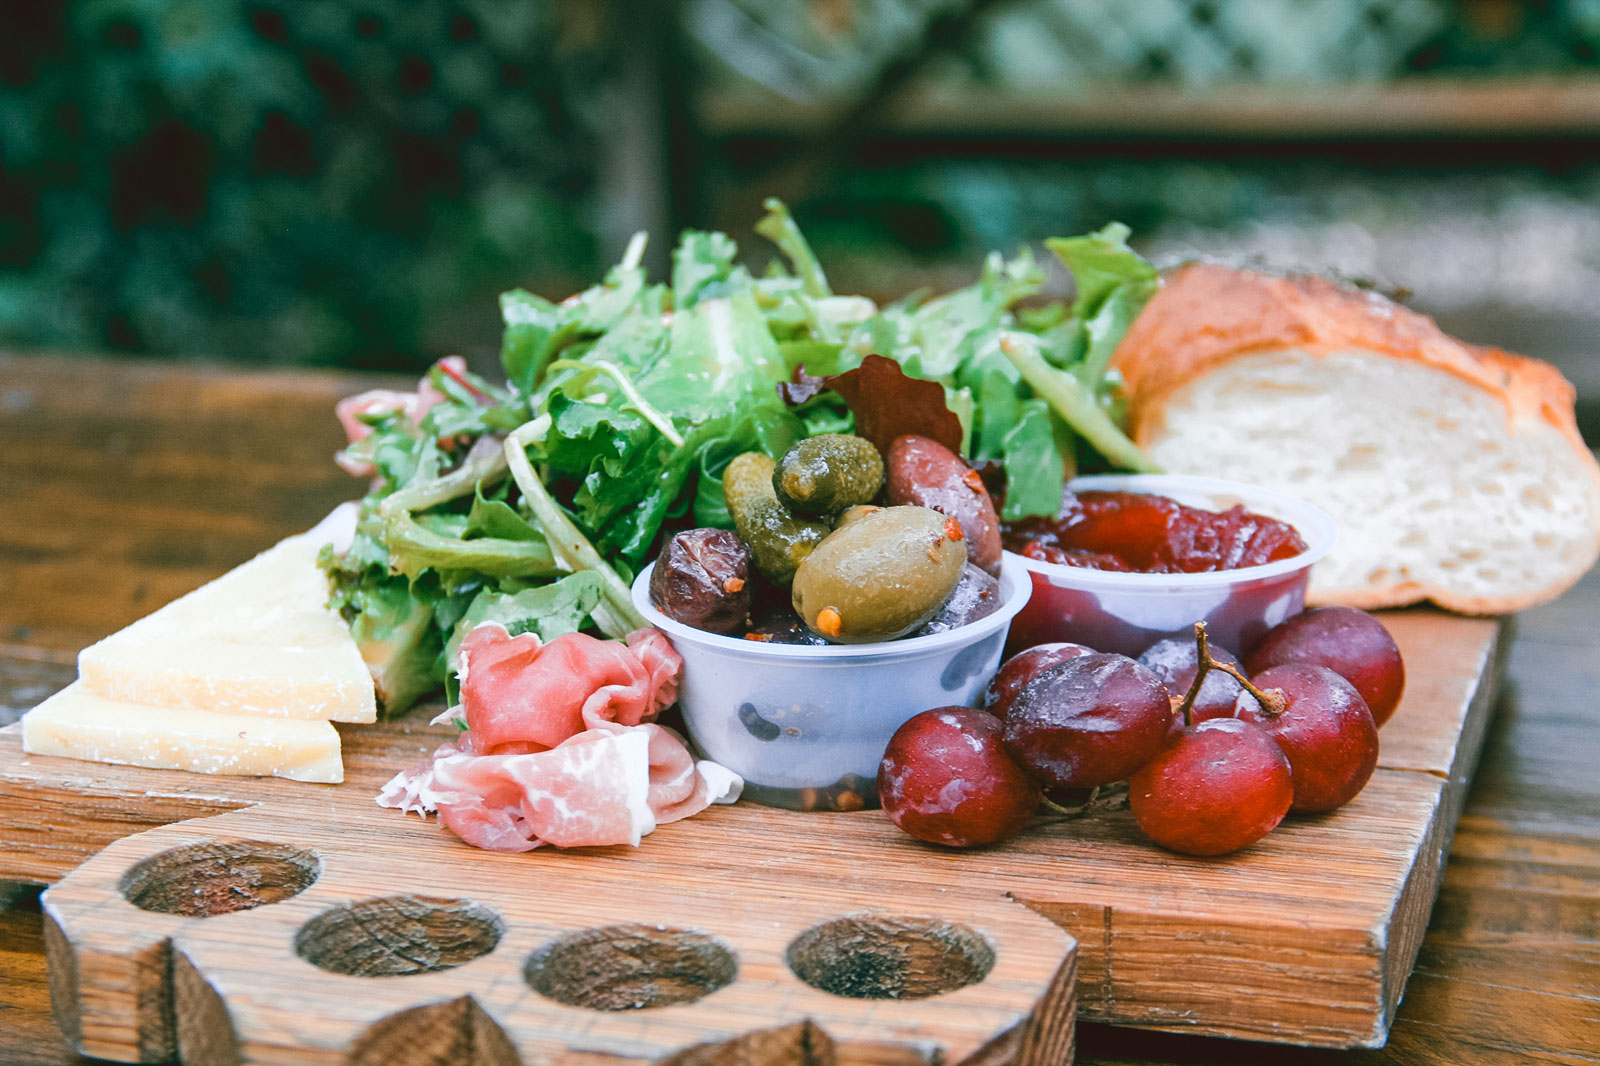 Meat and cheese board with bread, lettuce and grapes.